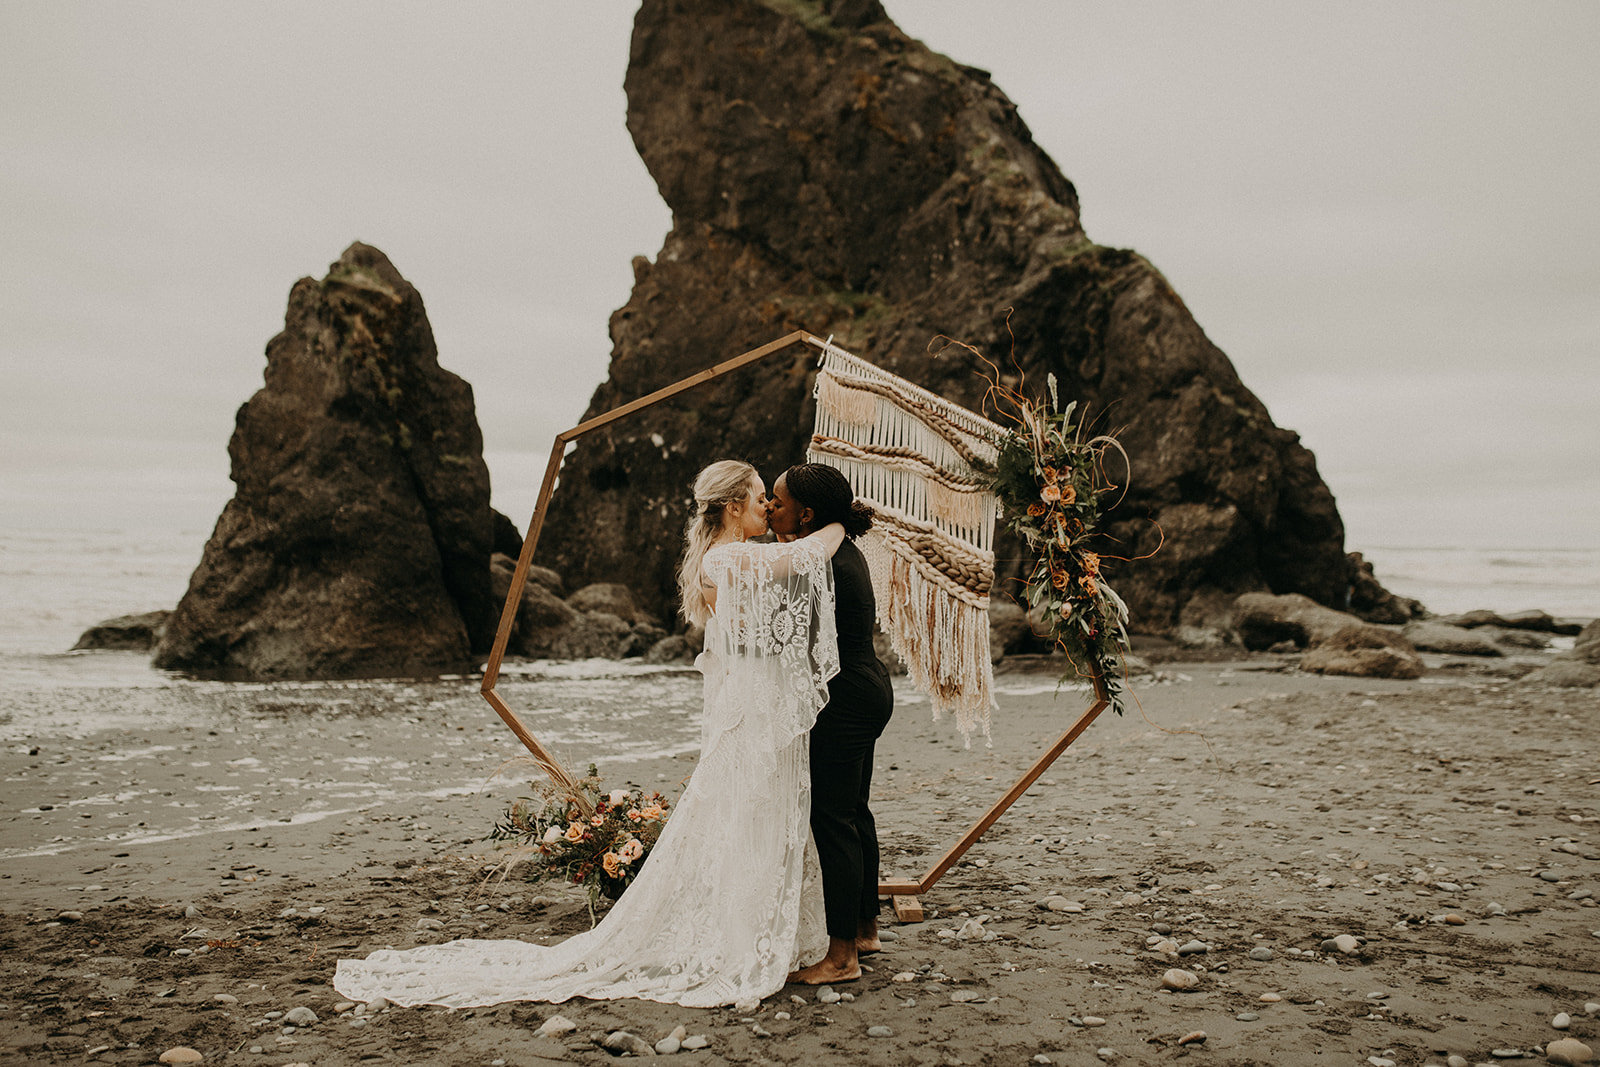 Ruby_Beach_Styled_Elopement_-_Run_Away_with_Me_Elopement_Collective_-_Kamra_Fuller_Photography_-_Ceremony-55